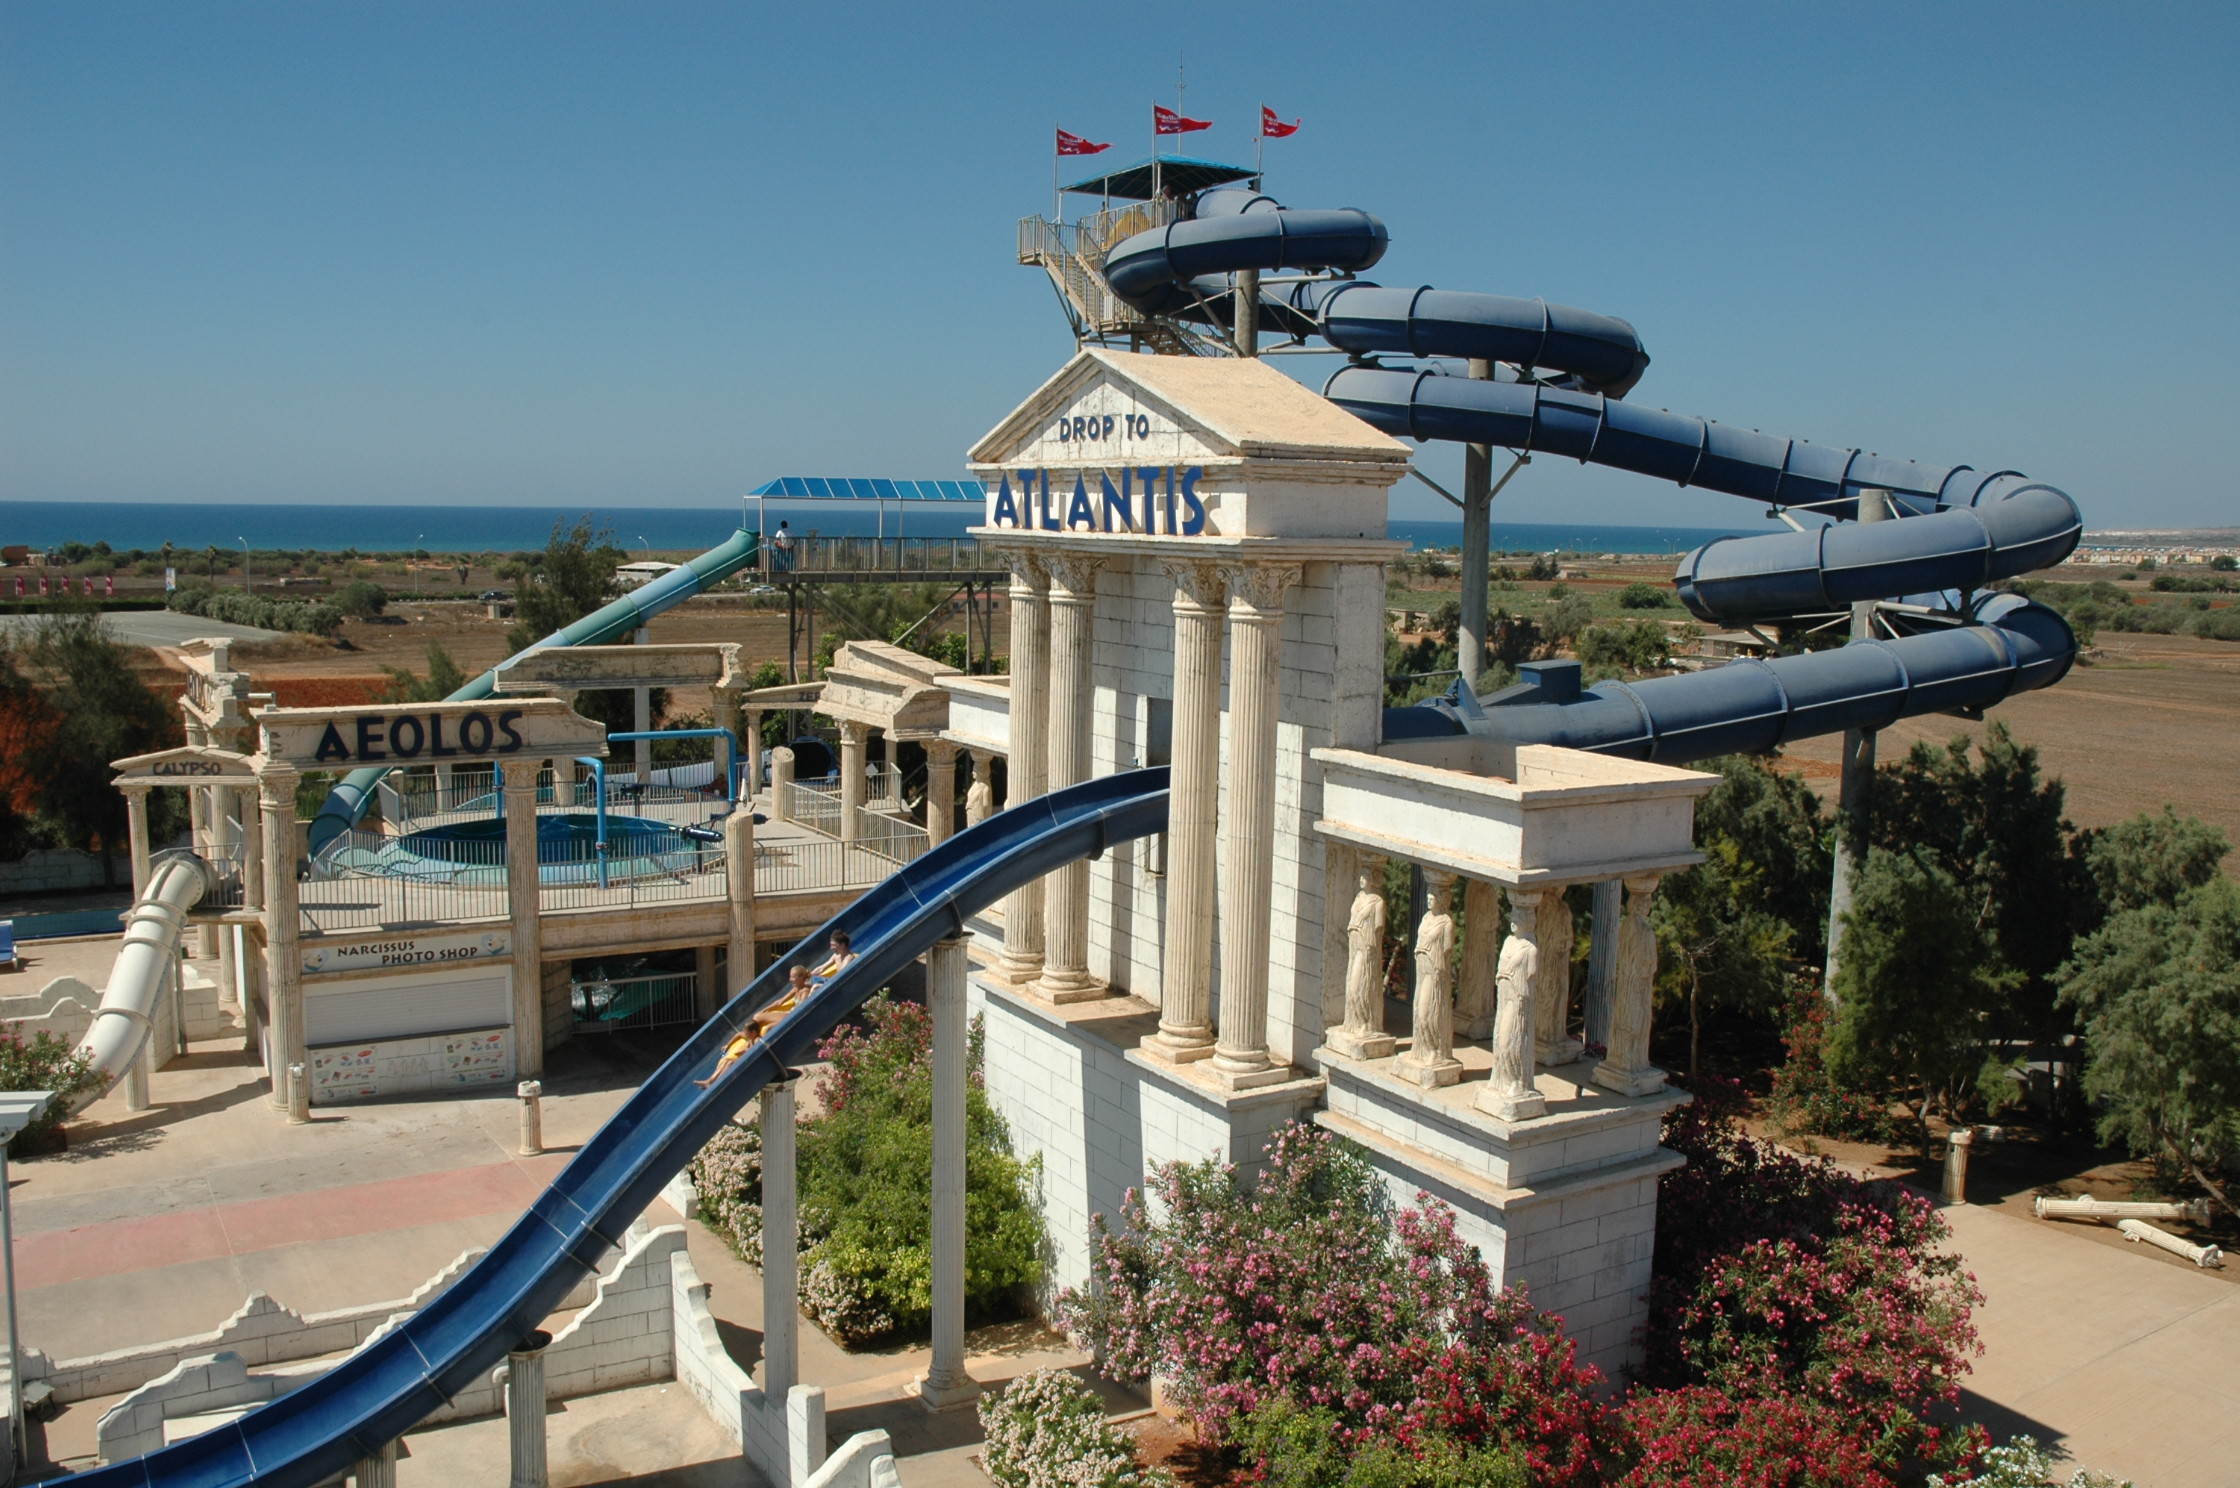 The water park in Ayia Napa